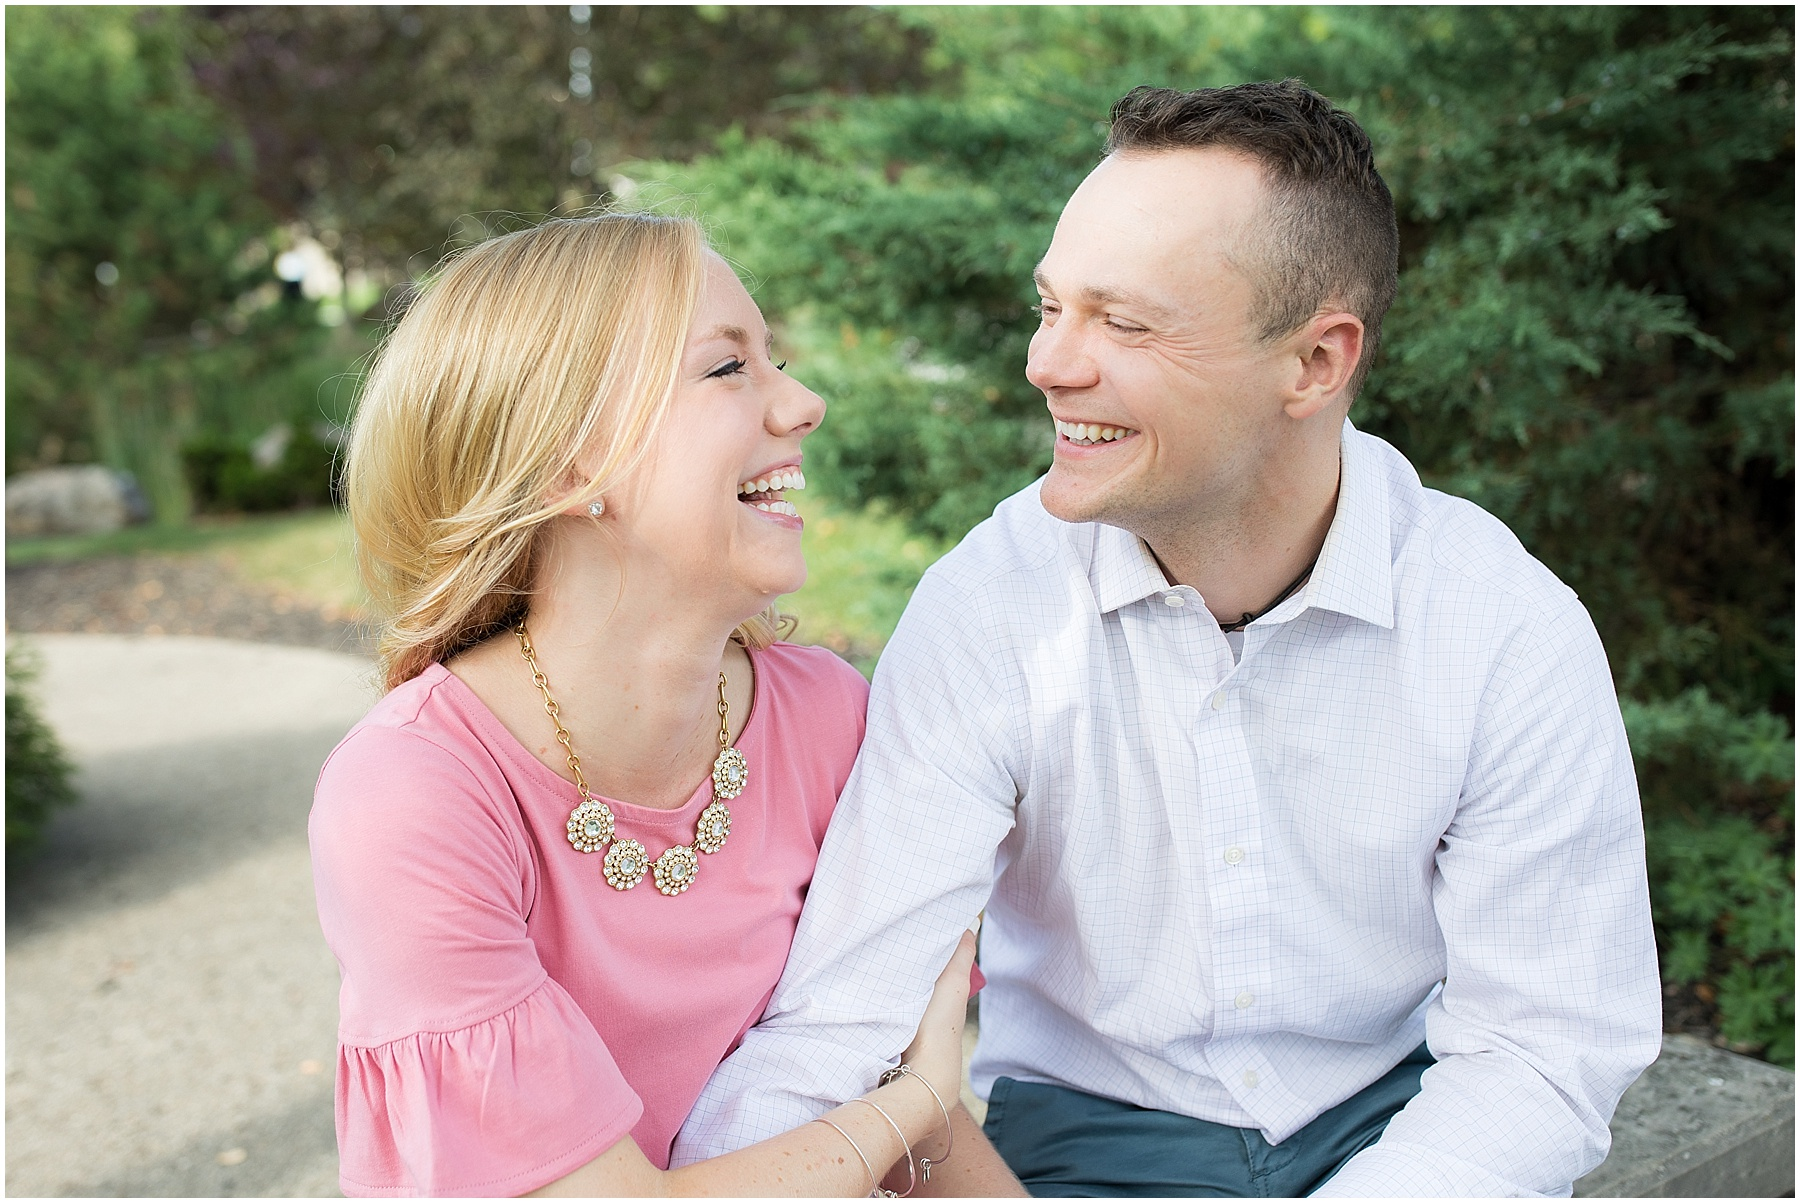 Soon to be married couple laughing and looking at each other, Indianapolis Engagement Photographer, Raindancer Studios